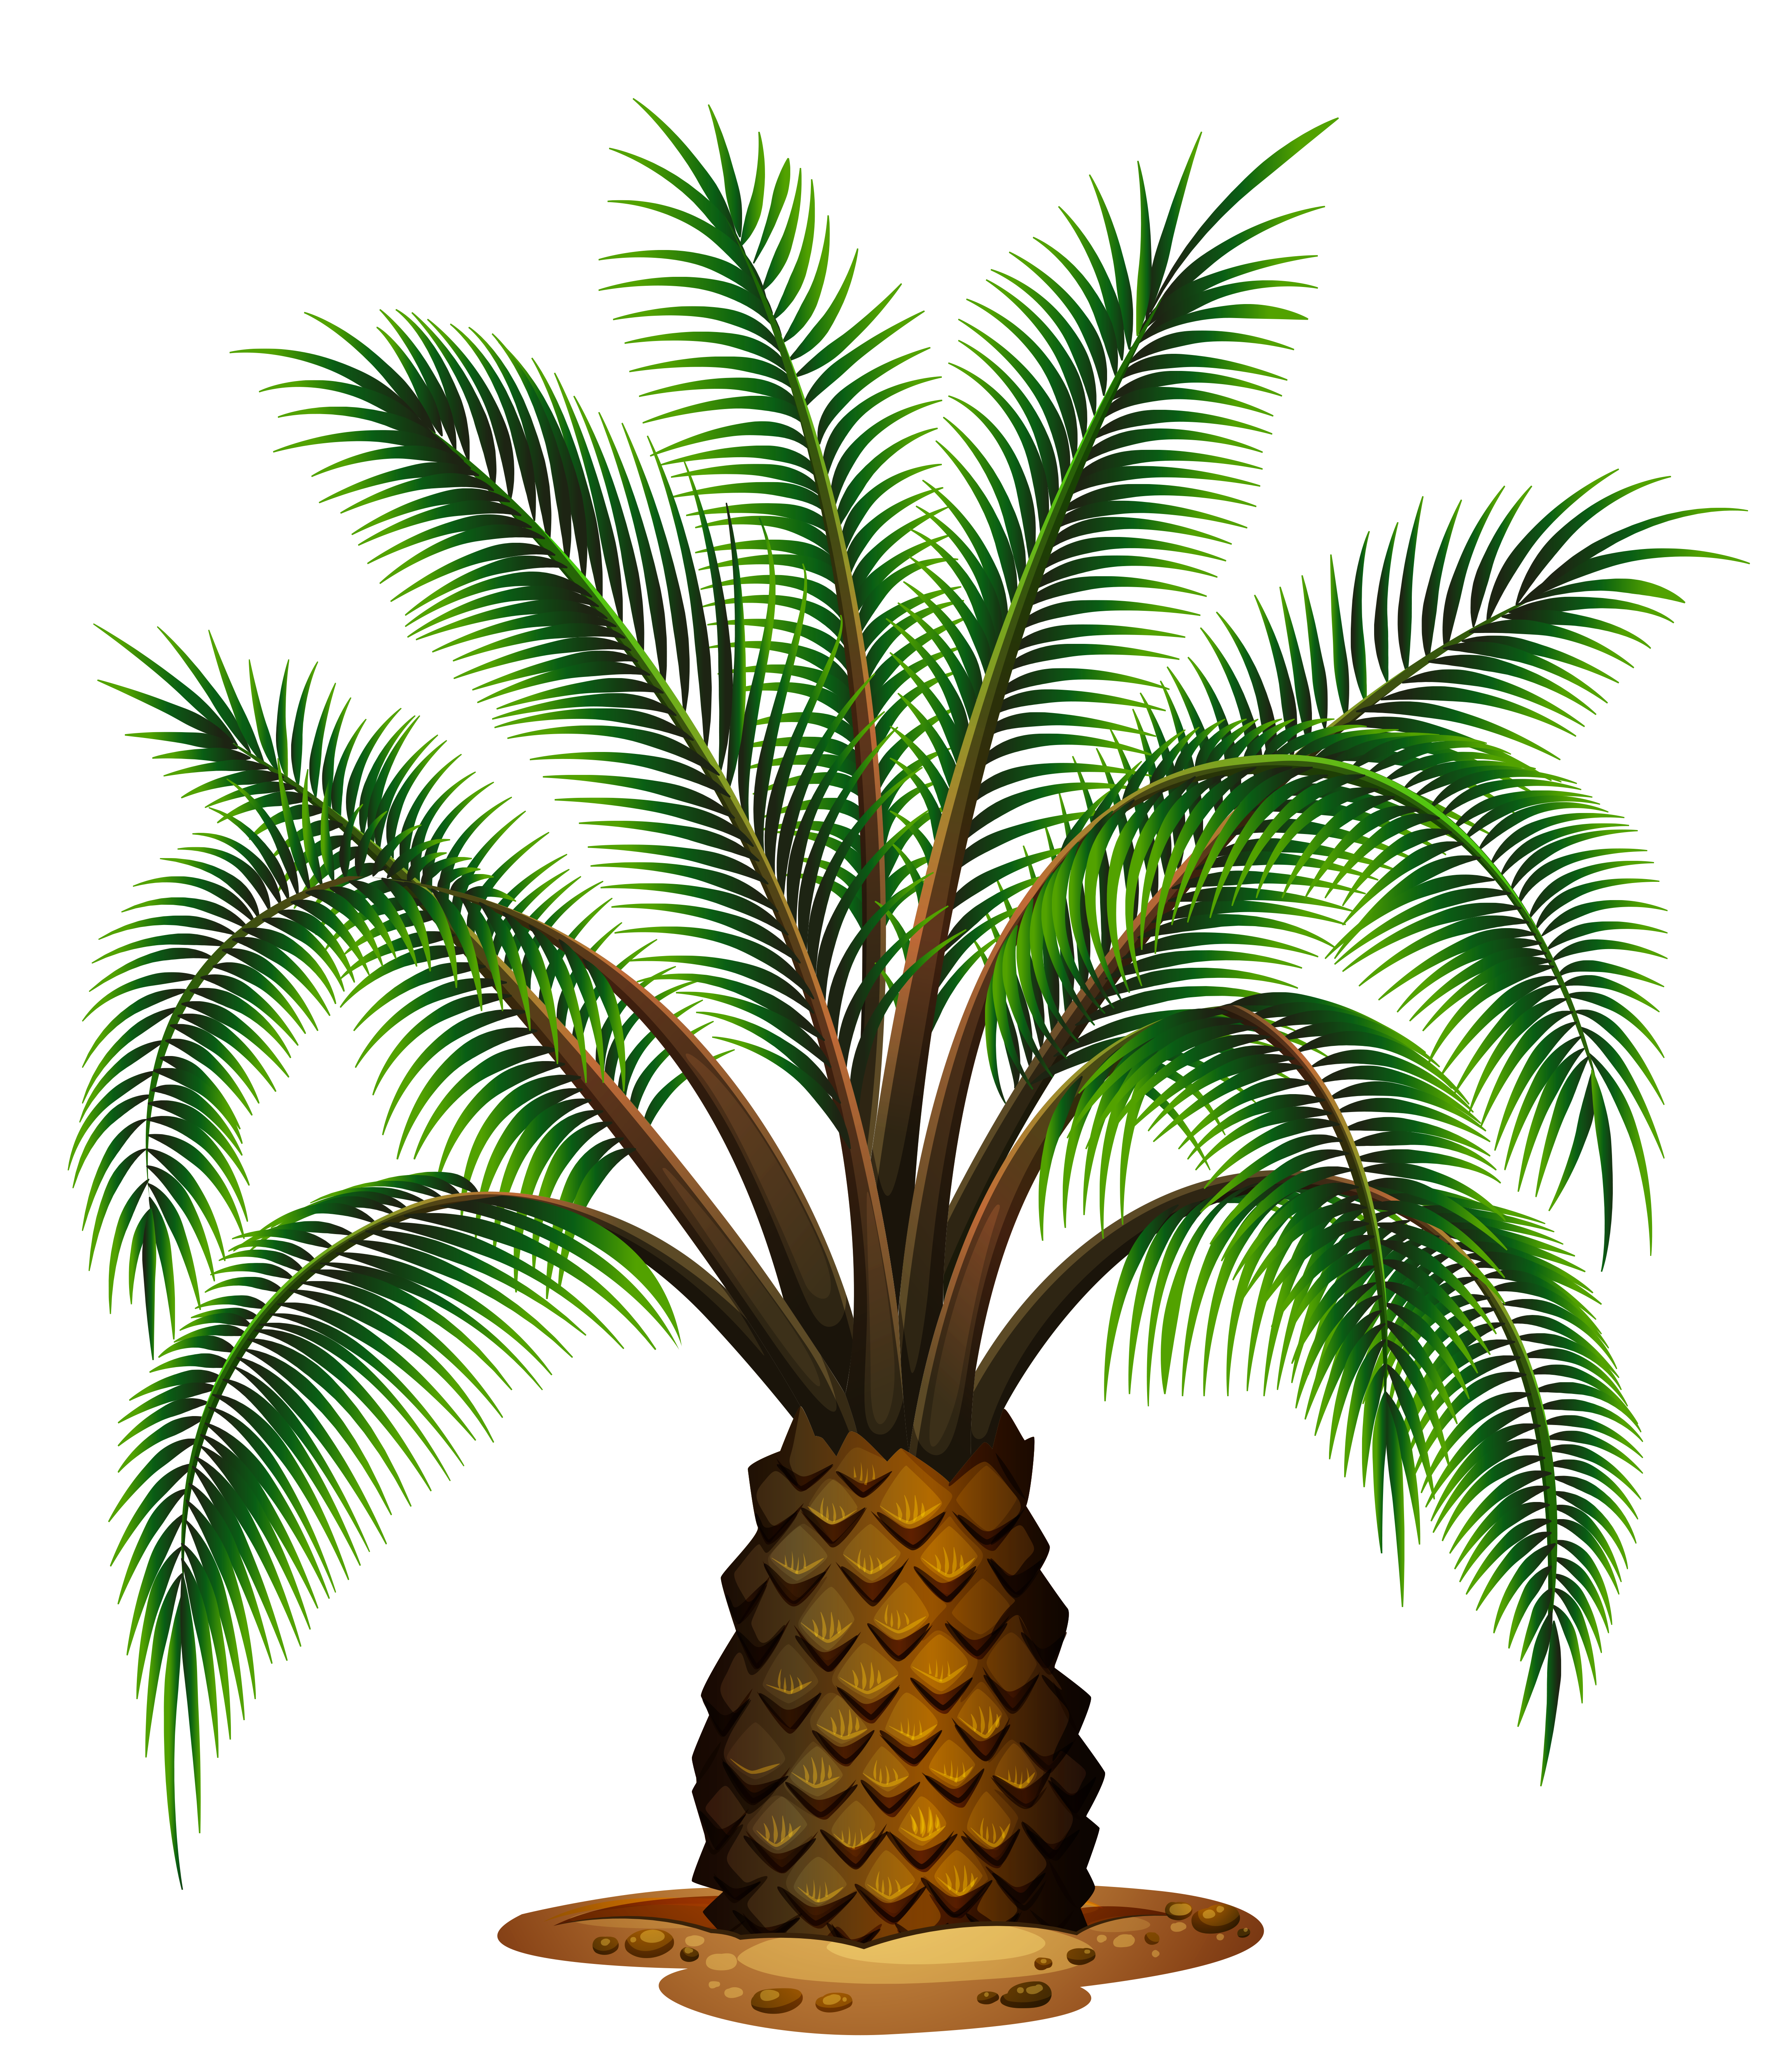 Tree pineapple pencil and. Palm clipart bunch